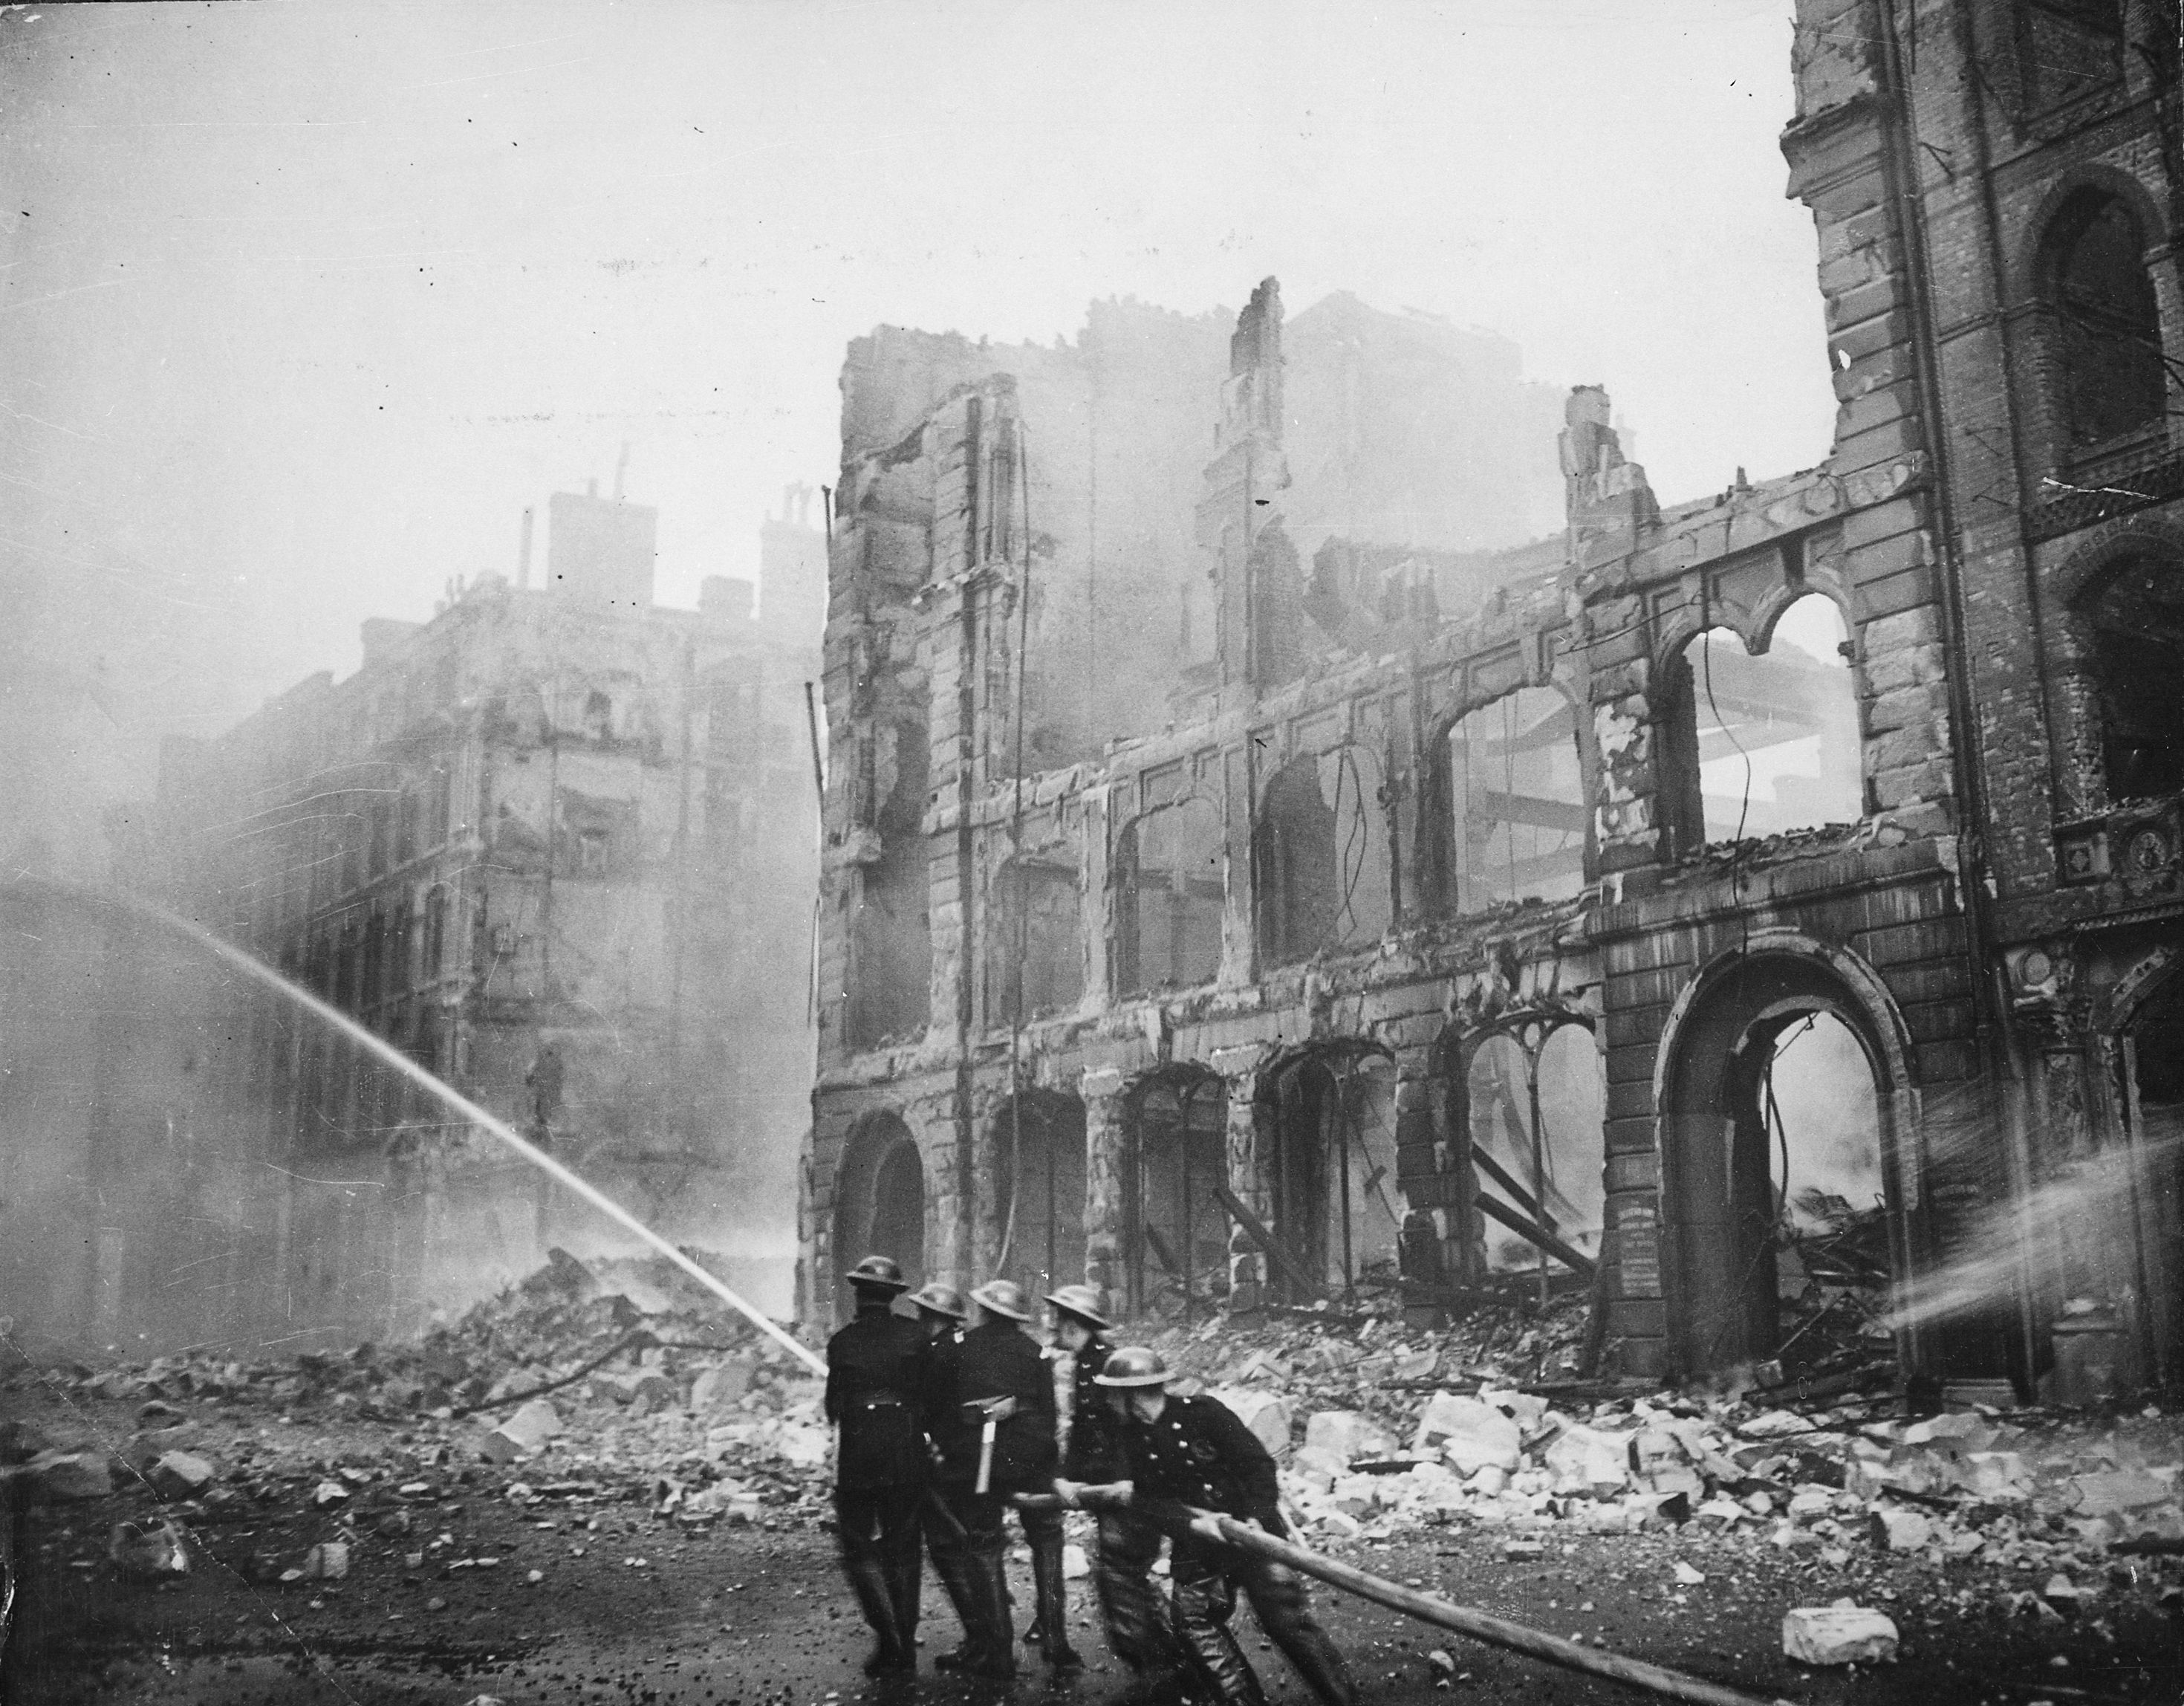 aftermath of the blitz on london still illustrates the idea of